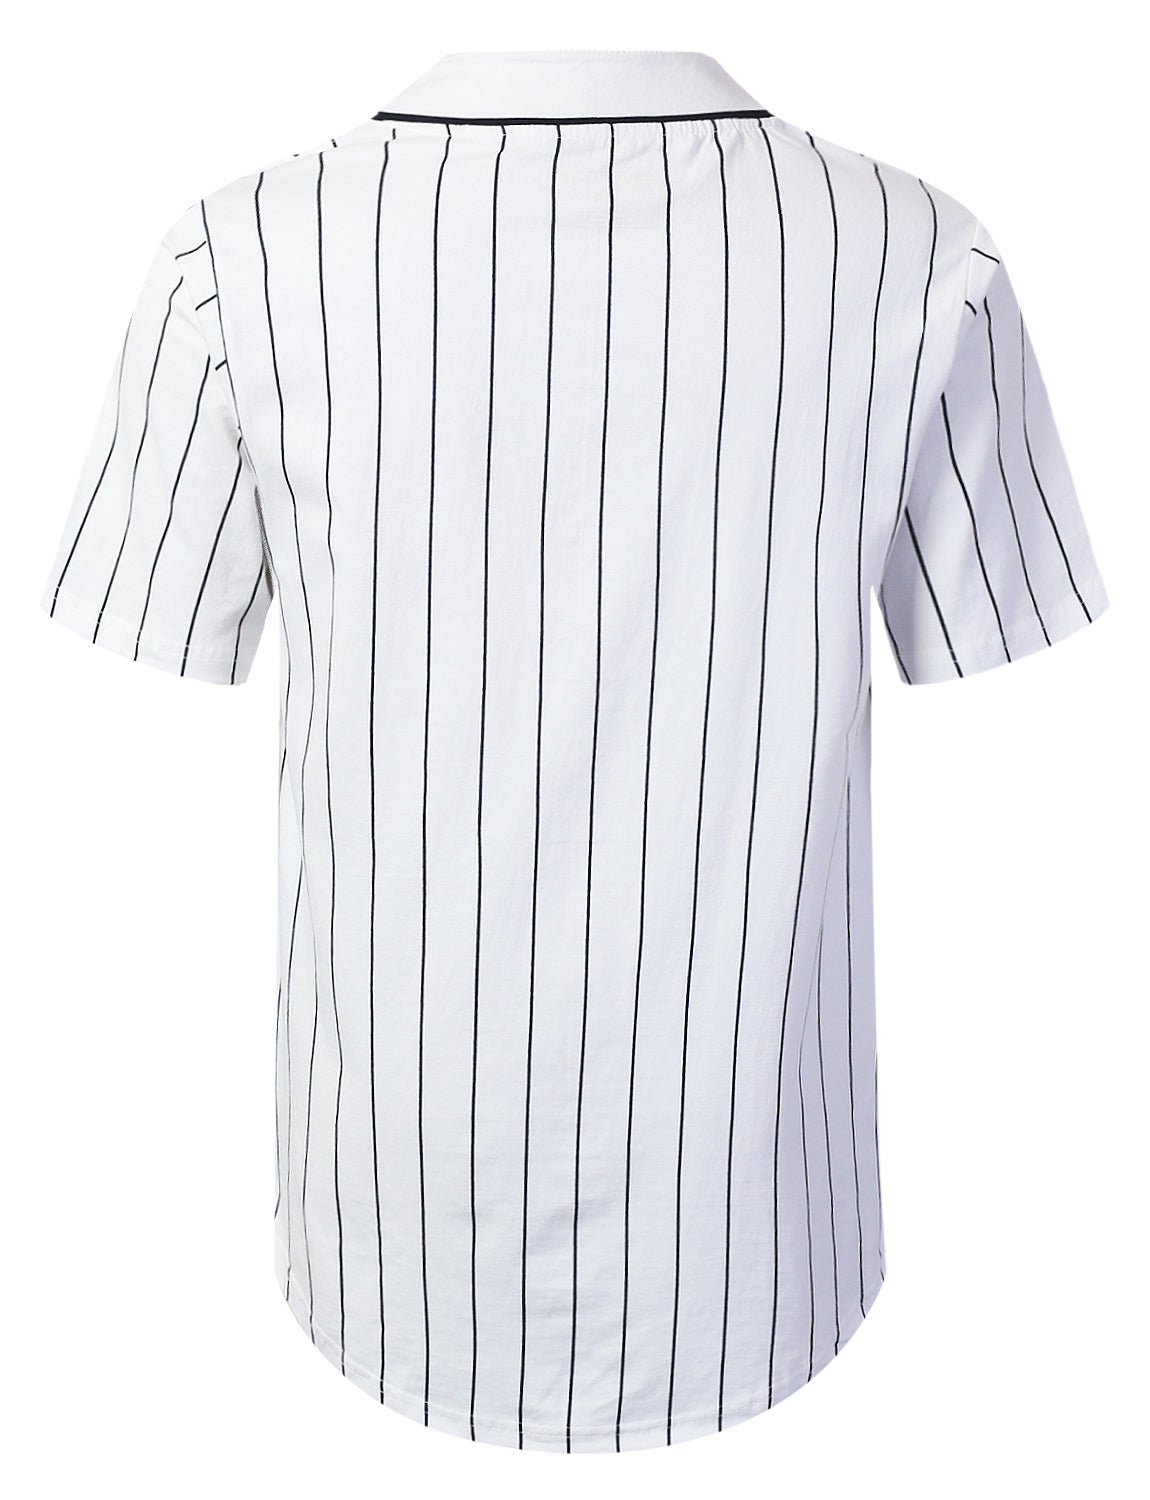 WHITE Striped Baseball Jersey Shirt - URBANCREWS